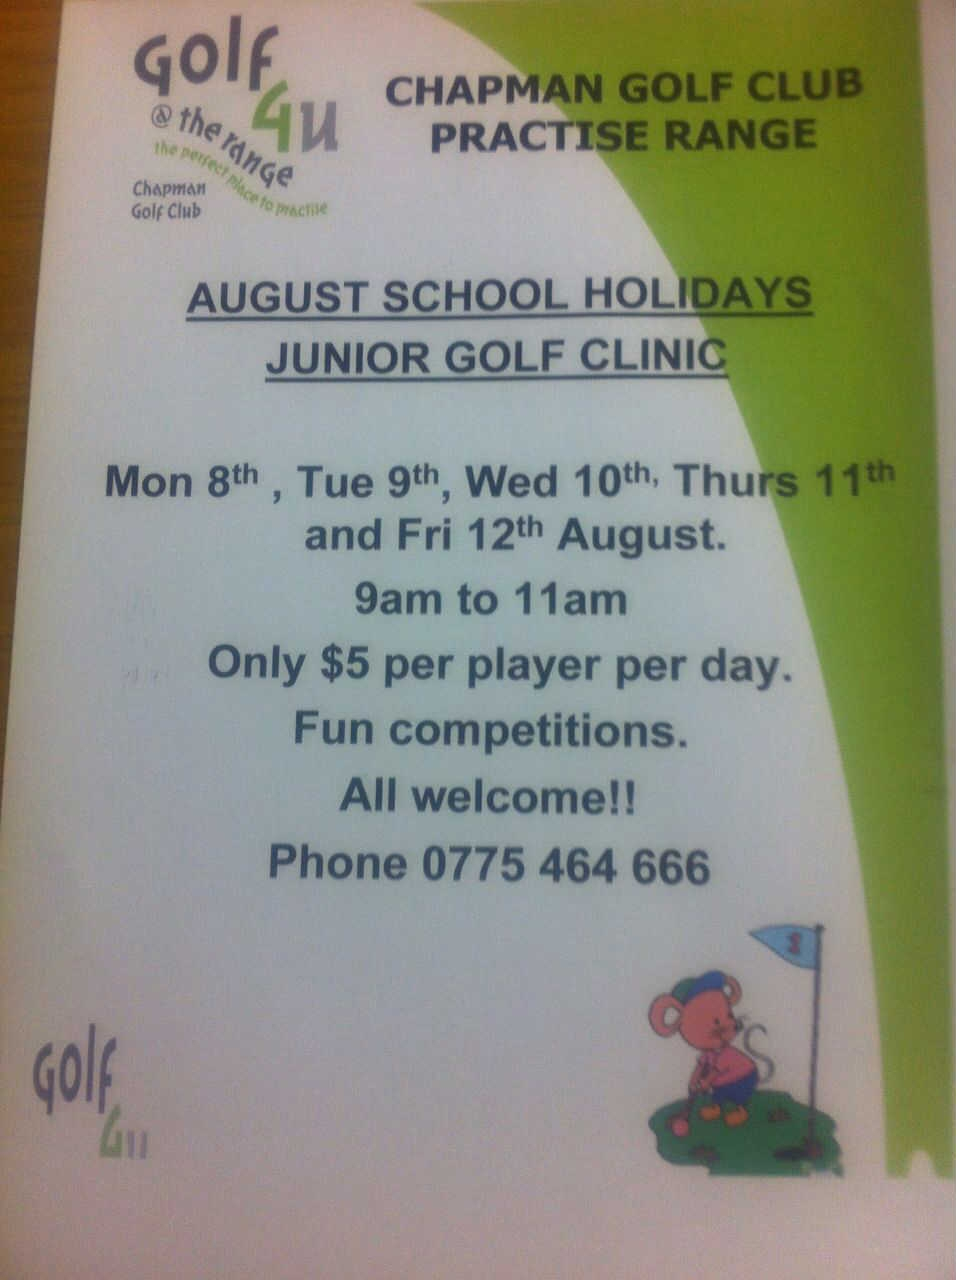 August School Holiday Junior Golf Clinic